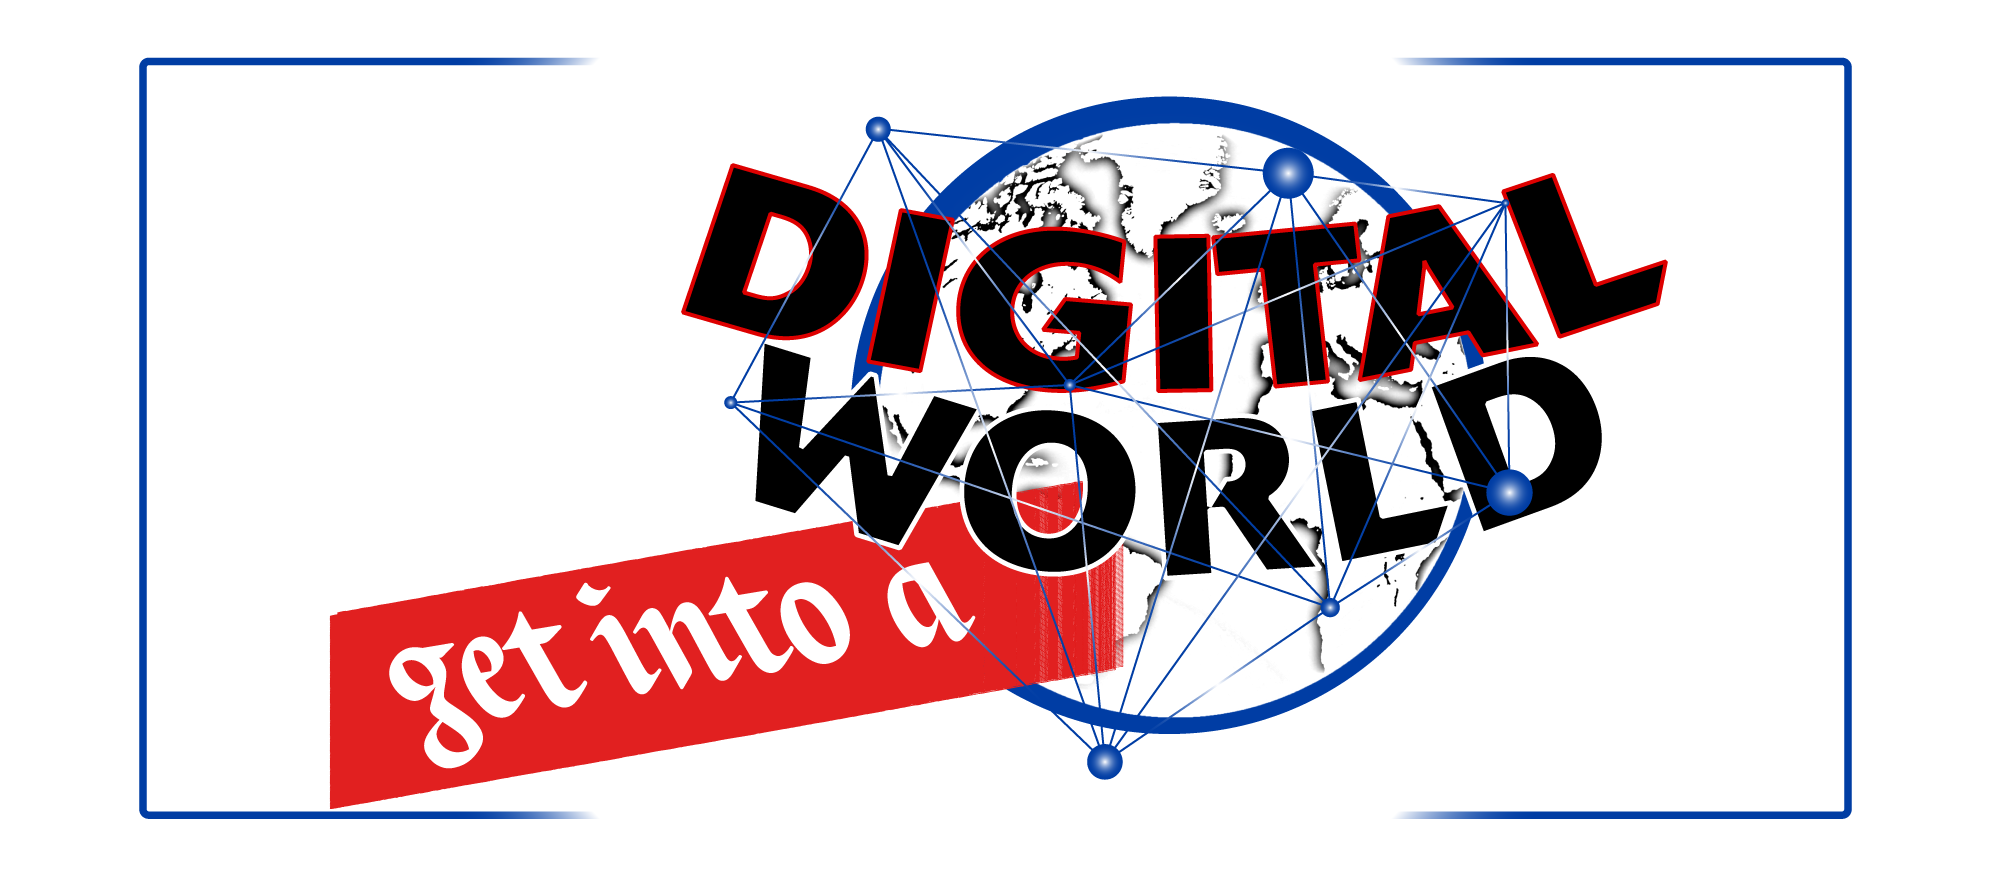 Get into a digital world logo